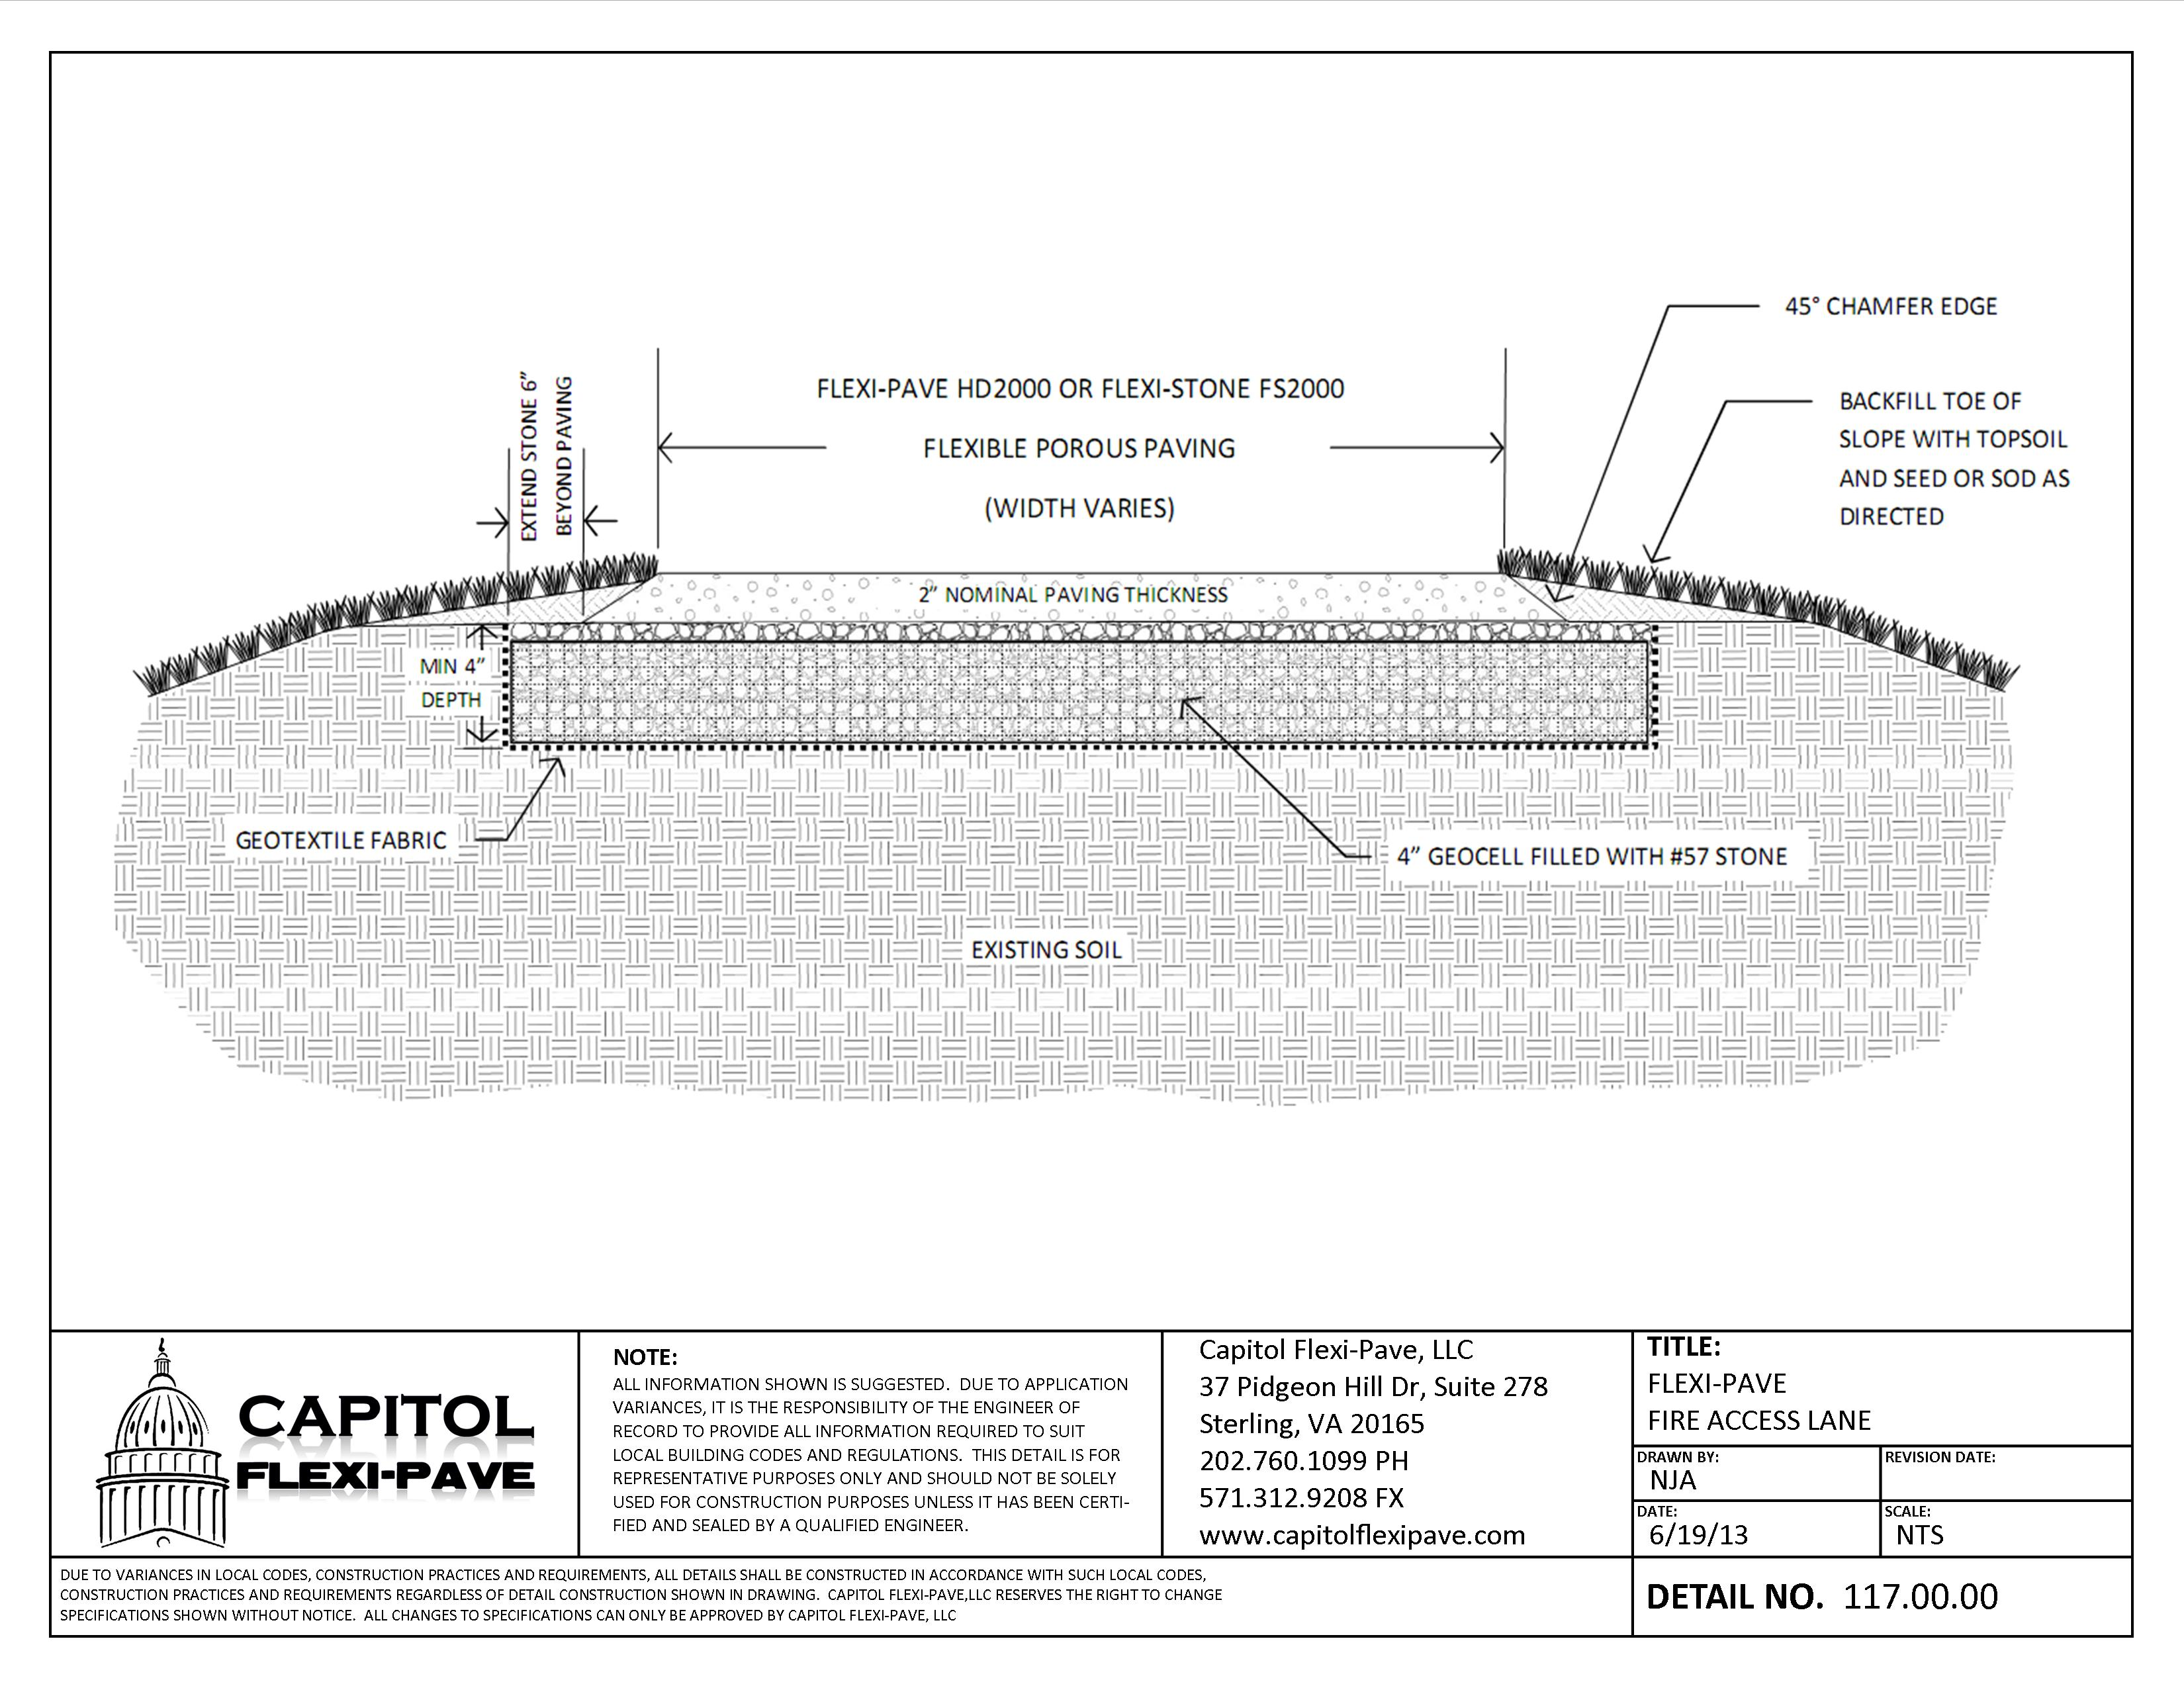 Capitol Flexi-Pave - Delivering Sustainable, Next Generation